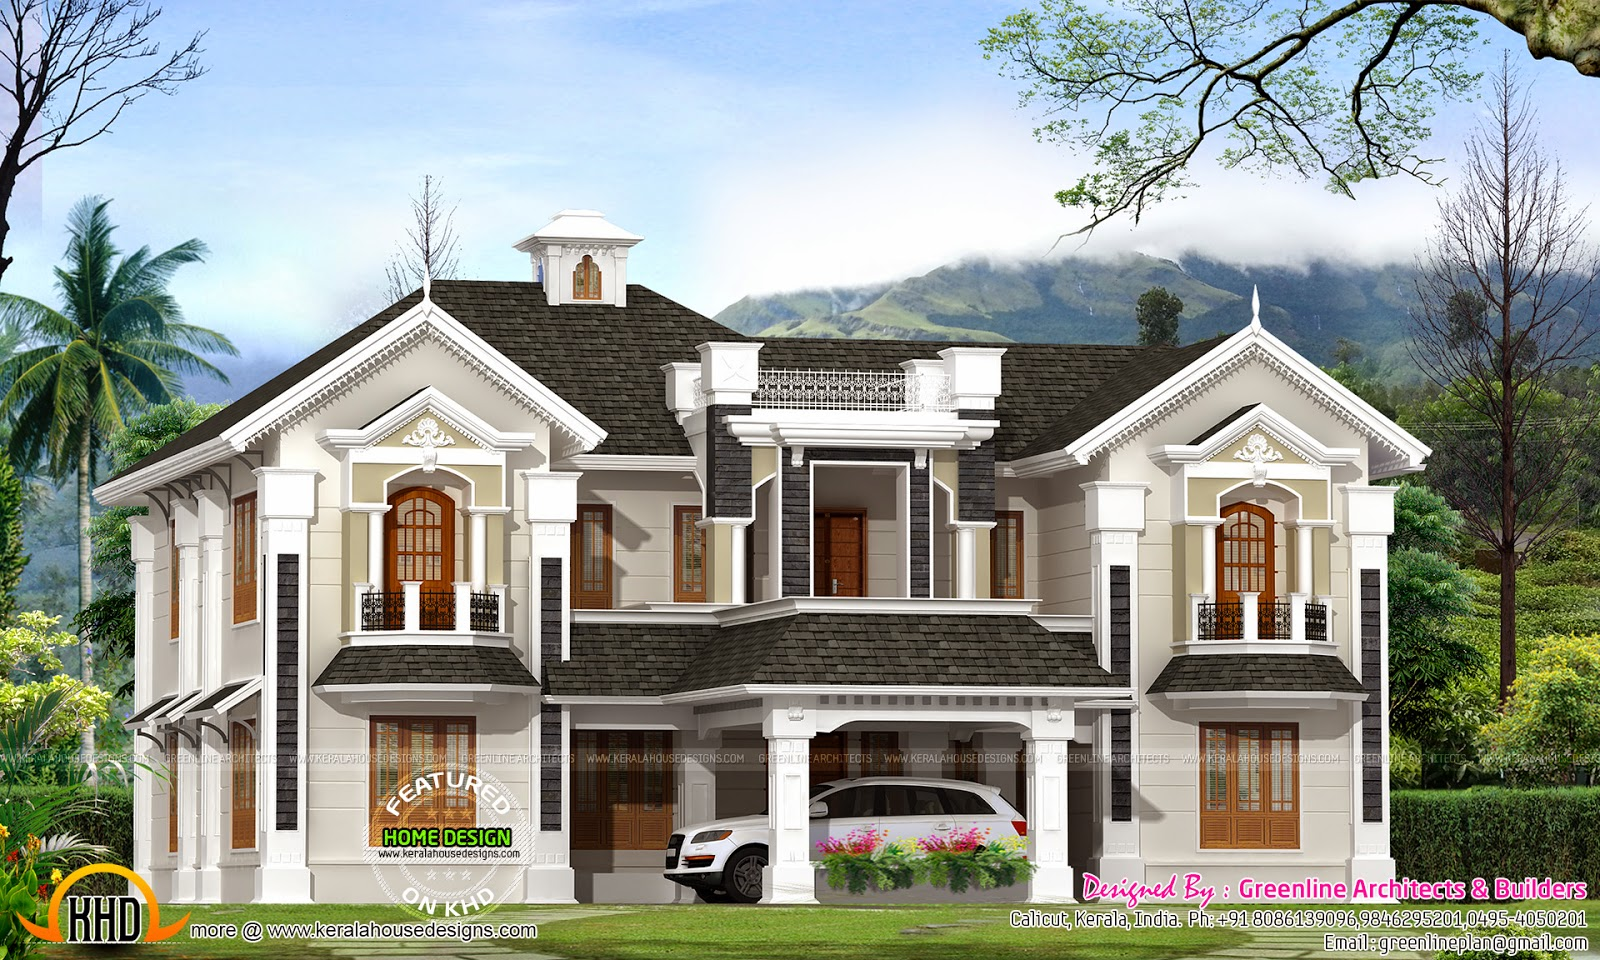 Colonial style house in kerala kerala home design and Colonial style house